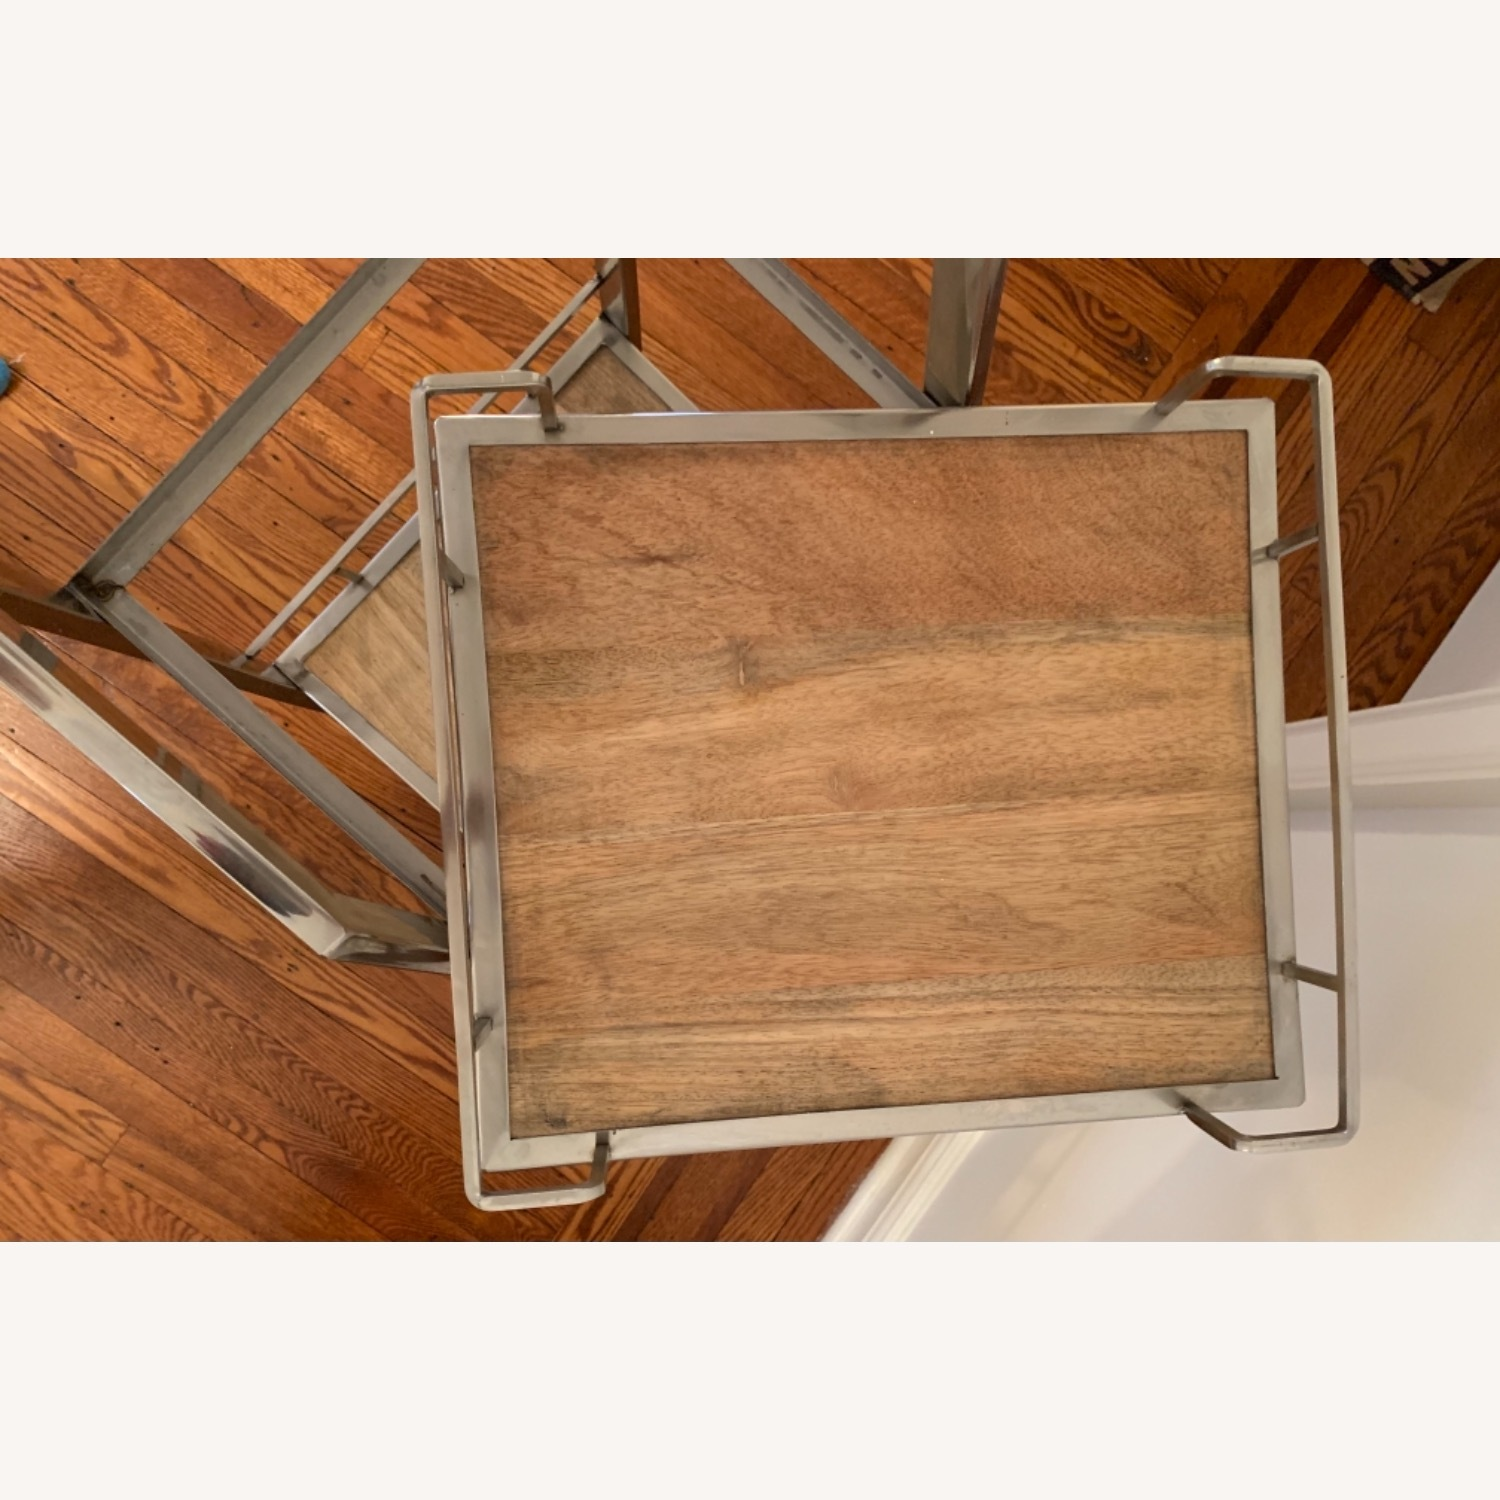 3 Tier Silver And Wood Bar Service Cart - image-5